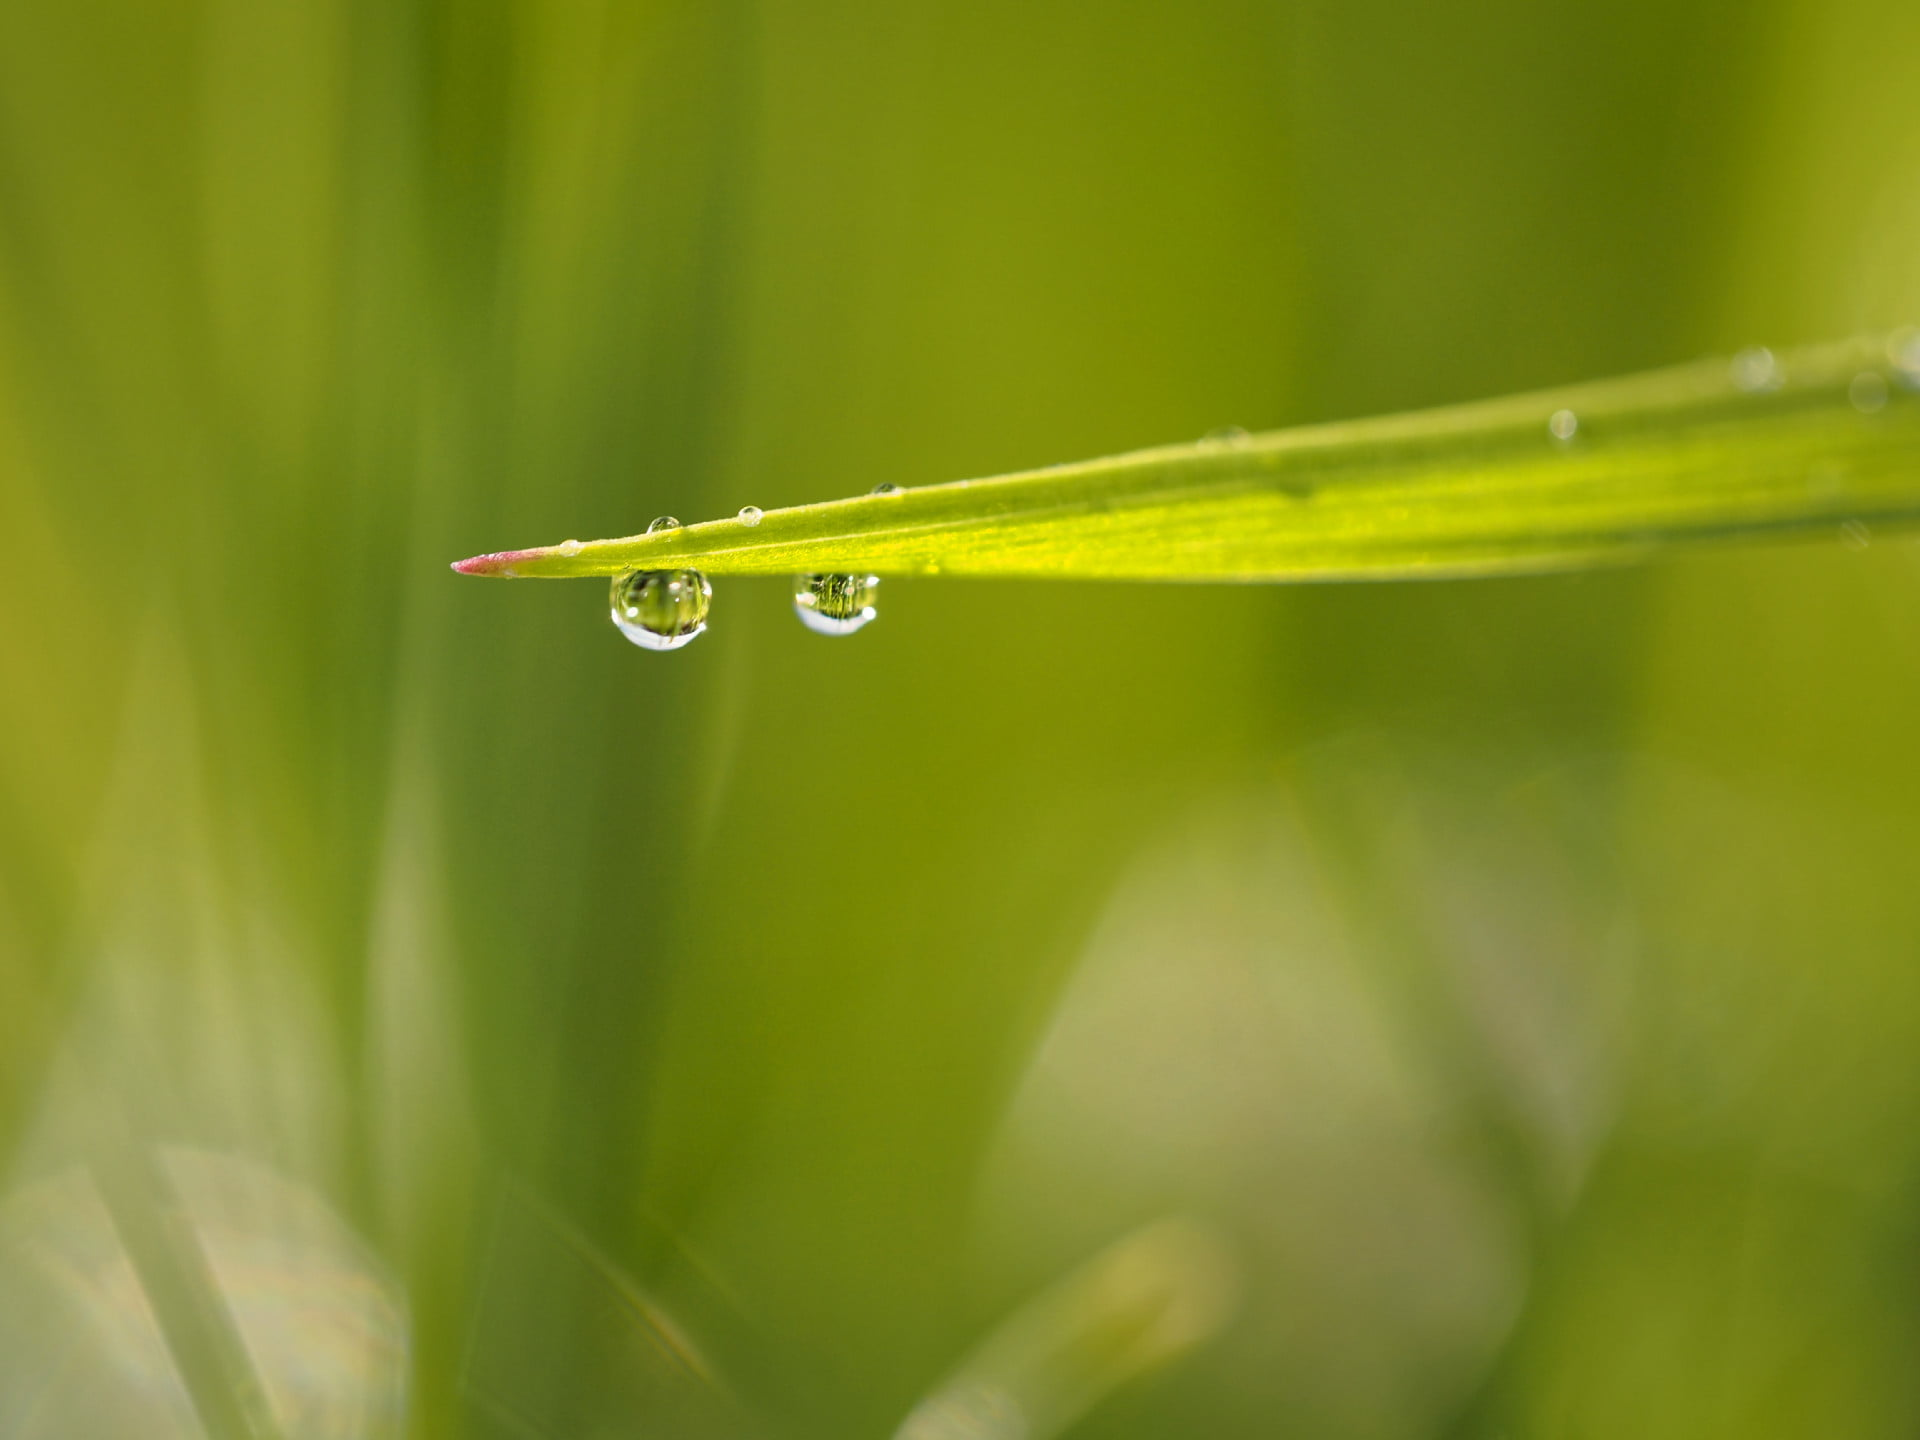 Tips For Water Droplet Photography.